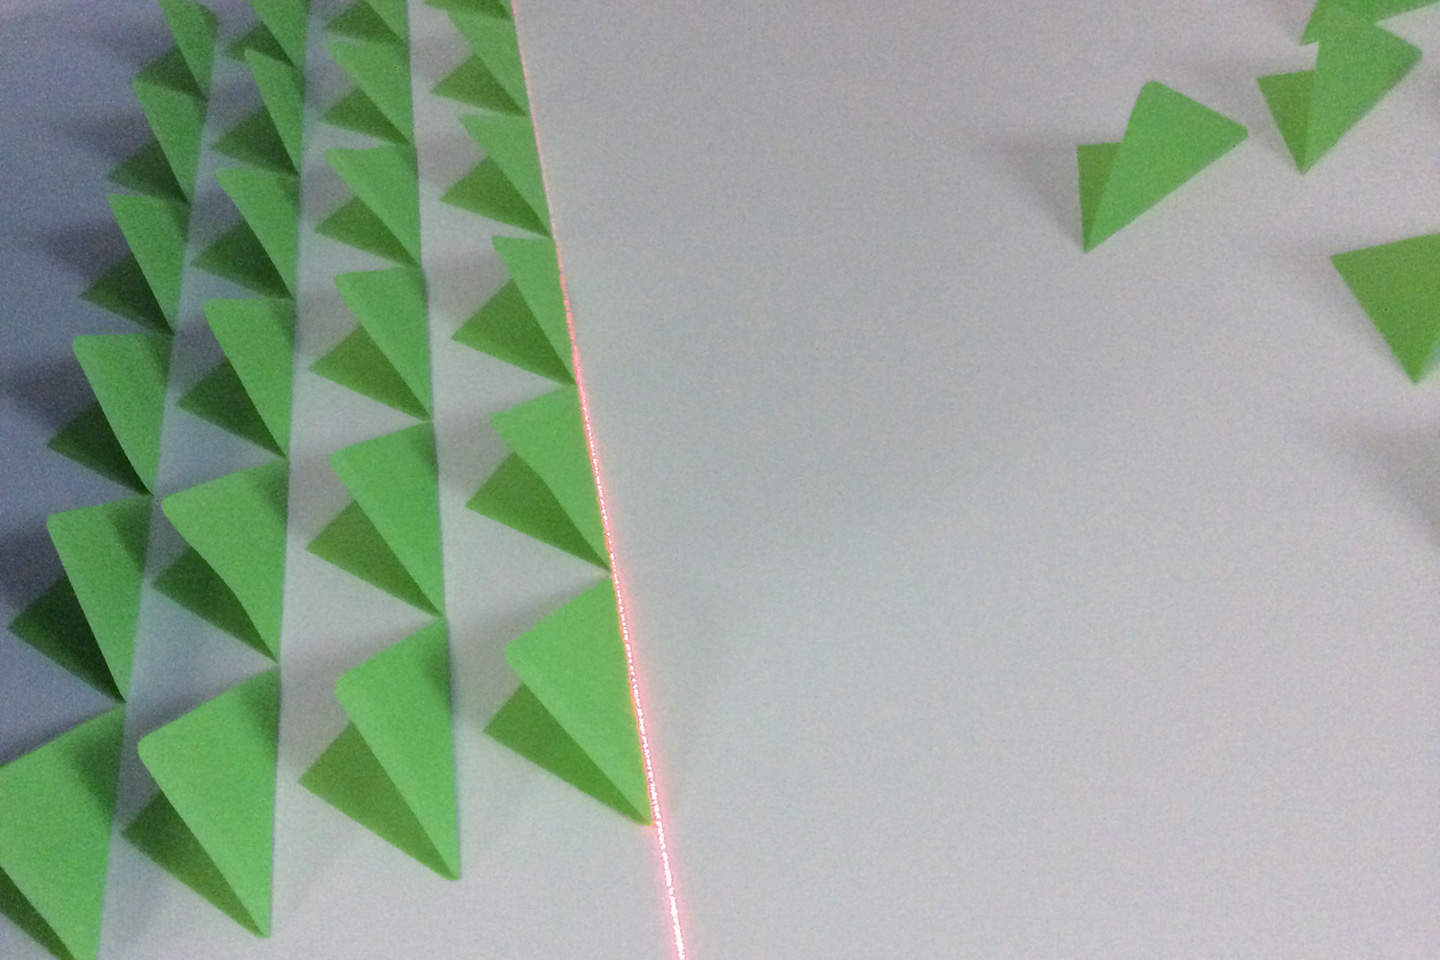 Green post-it notes folded in half on a white wall being aligned by a laser line